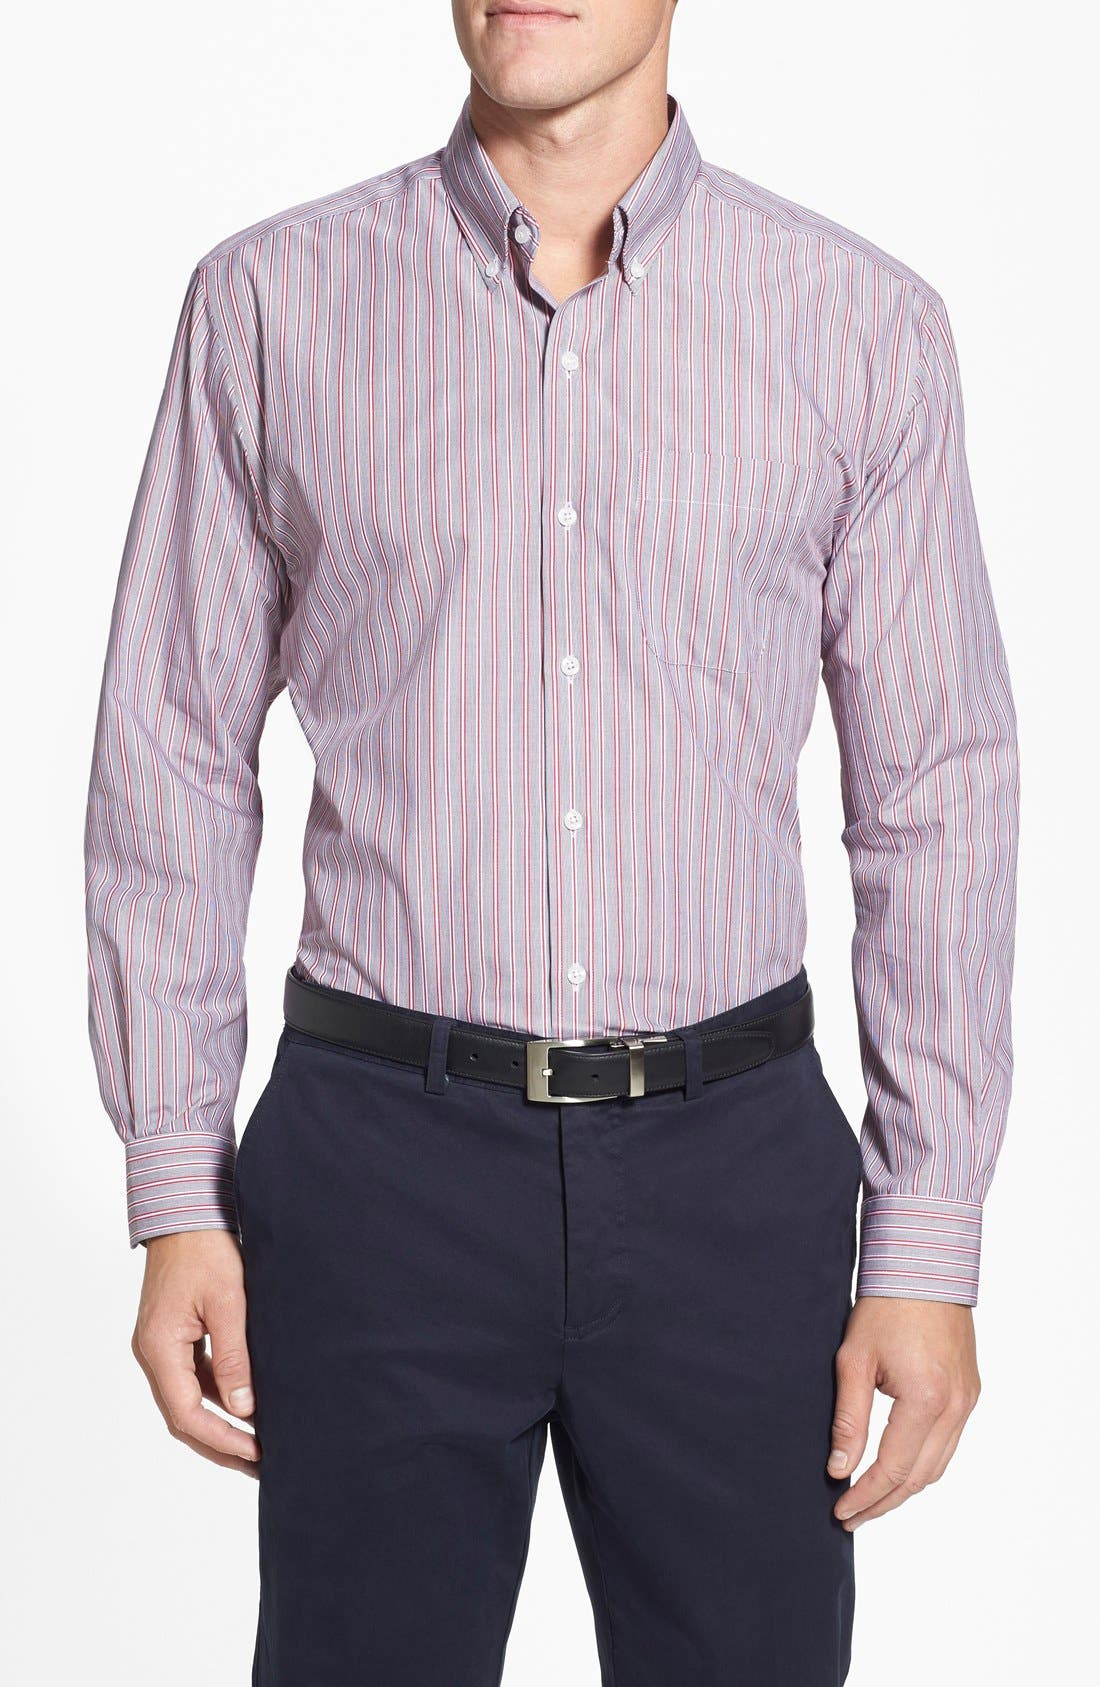 Main Image - Cutter & Buck 'Epic Easy Care' Classic Fit Wrinkle Resistant Stripe Sport Shirt